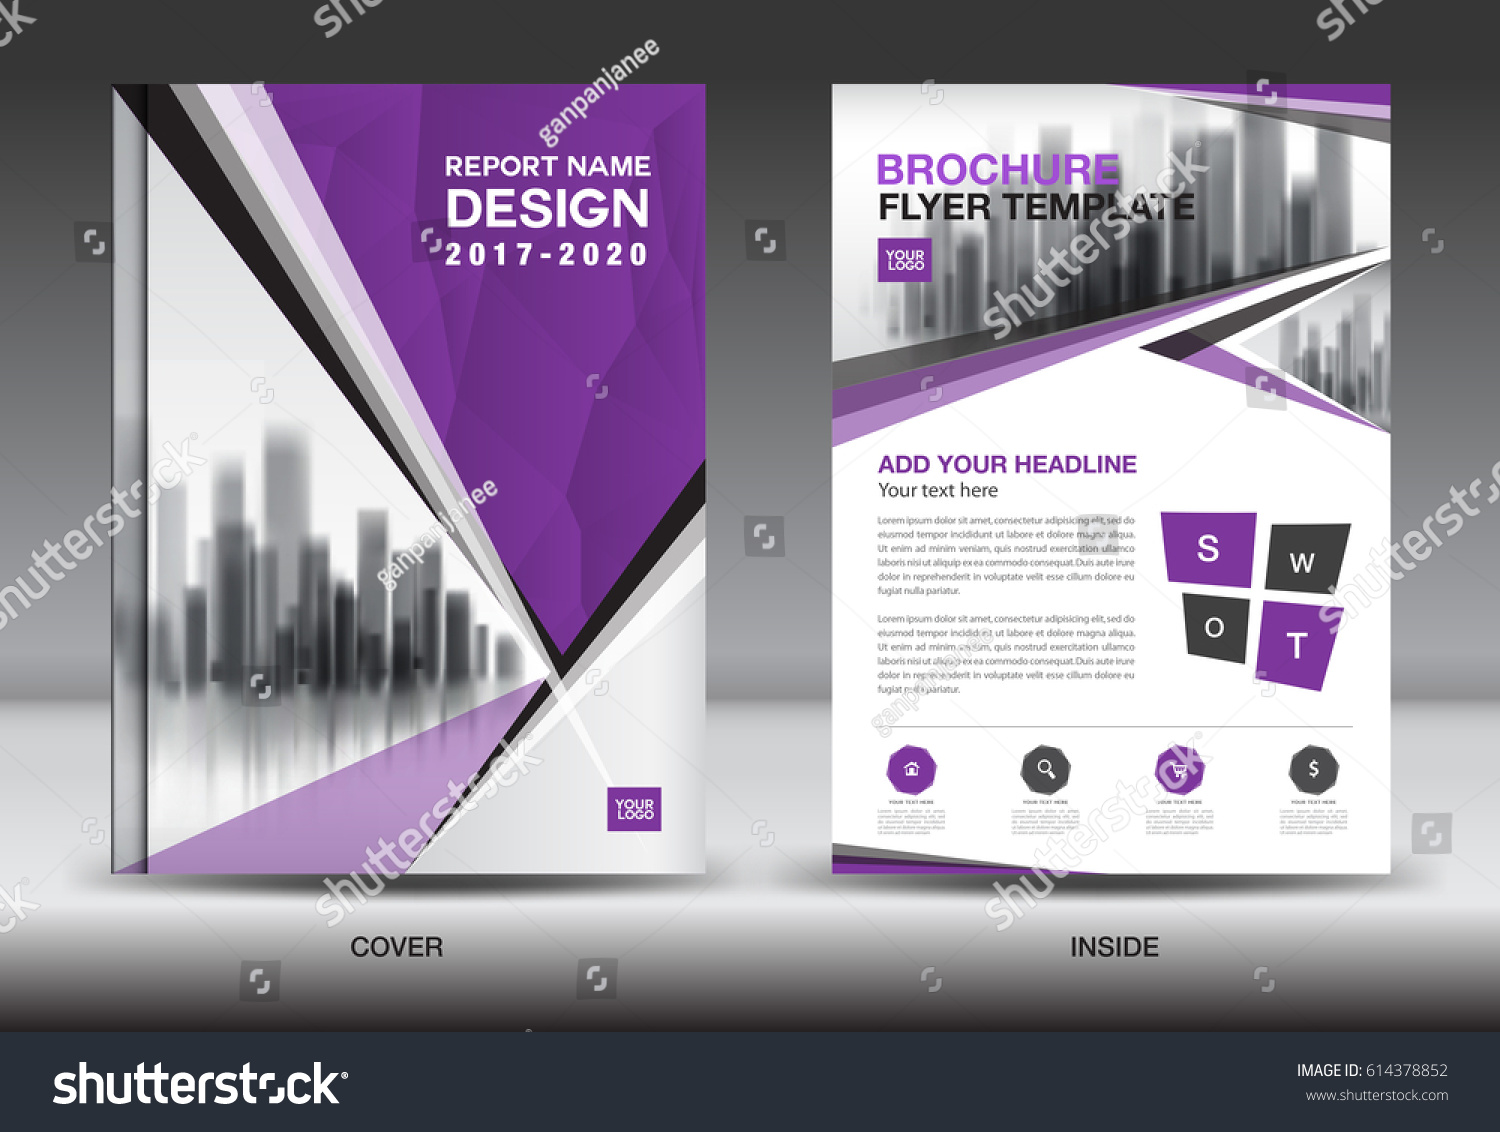 Book color scheme - Purple Color Scheme With City Background Business Book Cover Design Template In A4 Business Brochure